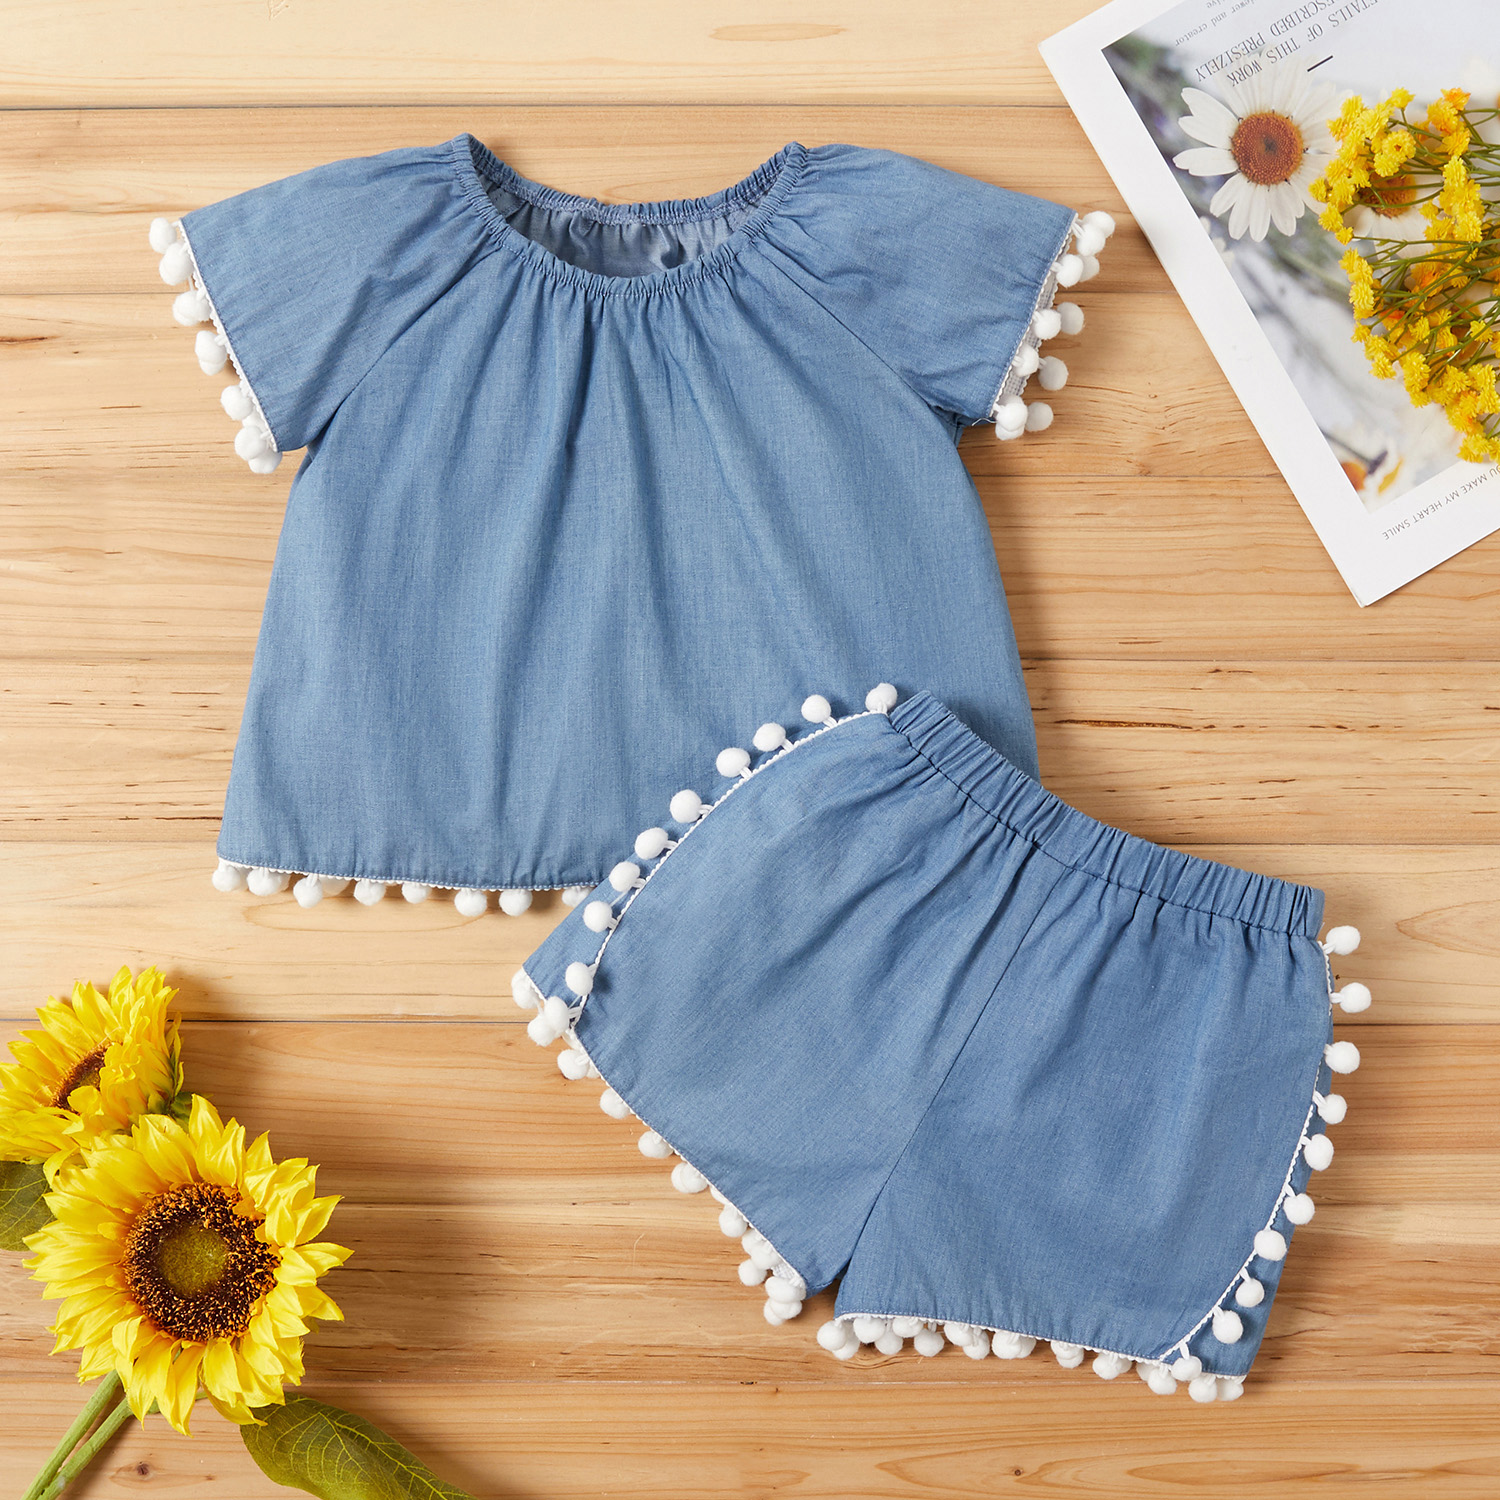 Baby / Toddler Pompon Decor Denim Top and Shorts Set